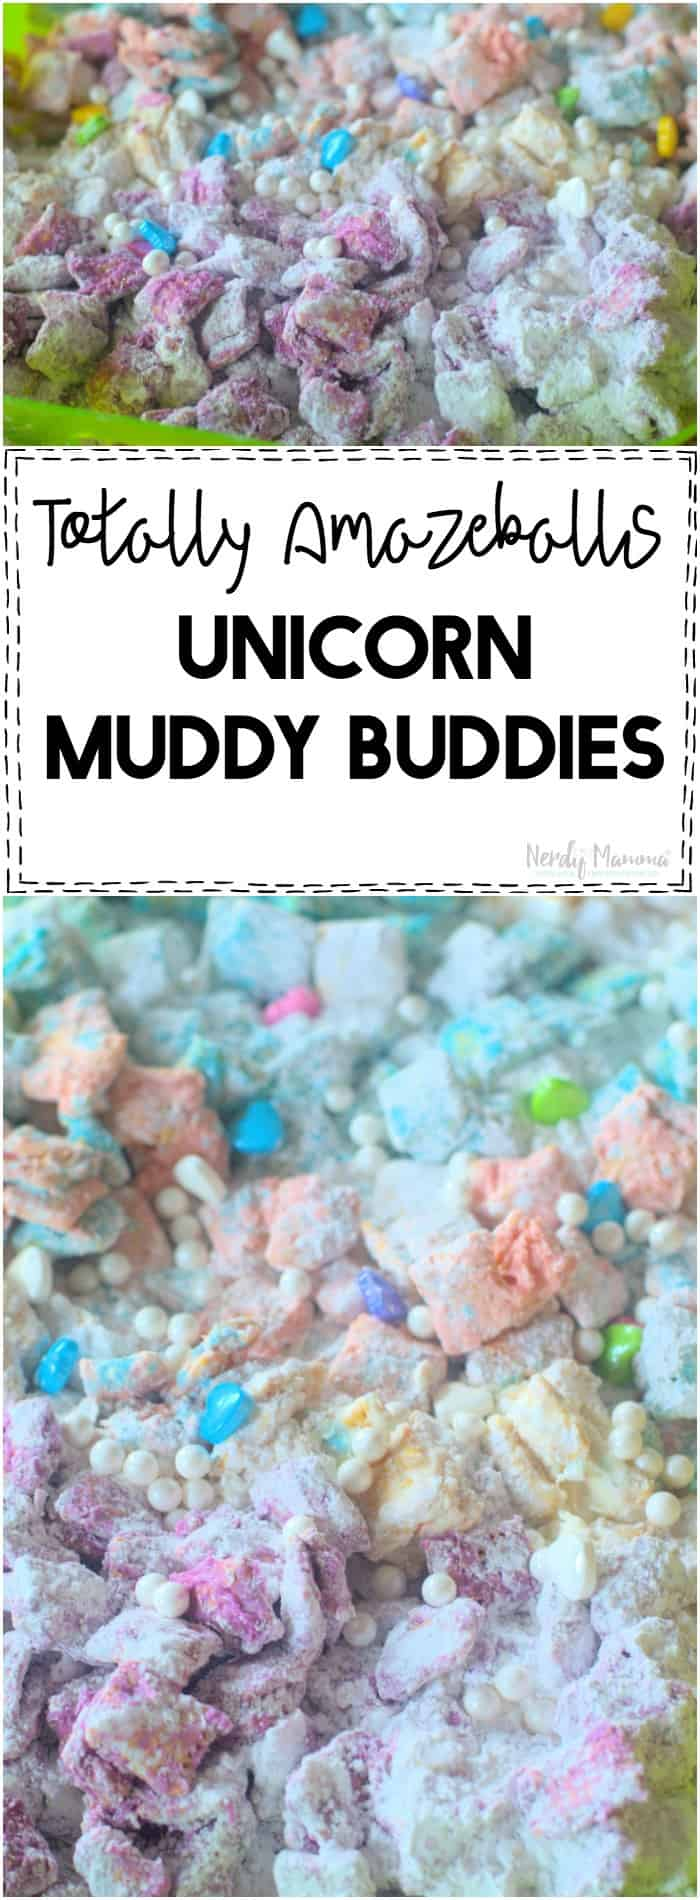 OMG This Unicorn Muddy Buddies recipe is AMAZEBALLS!